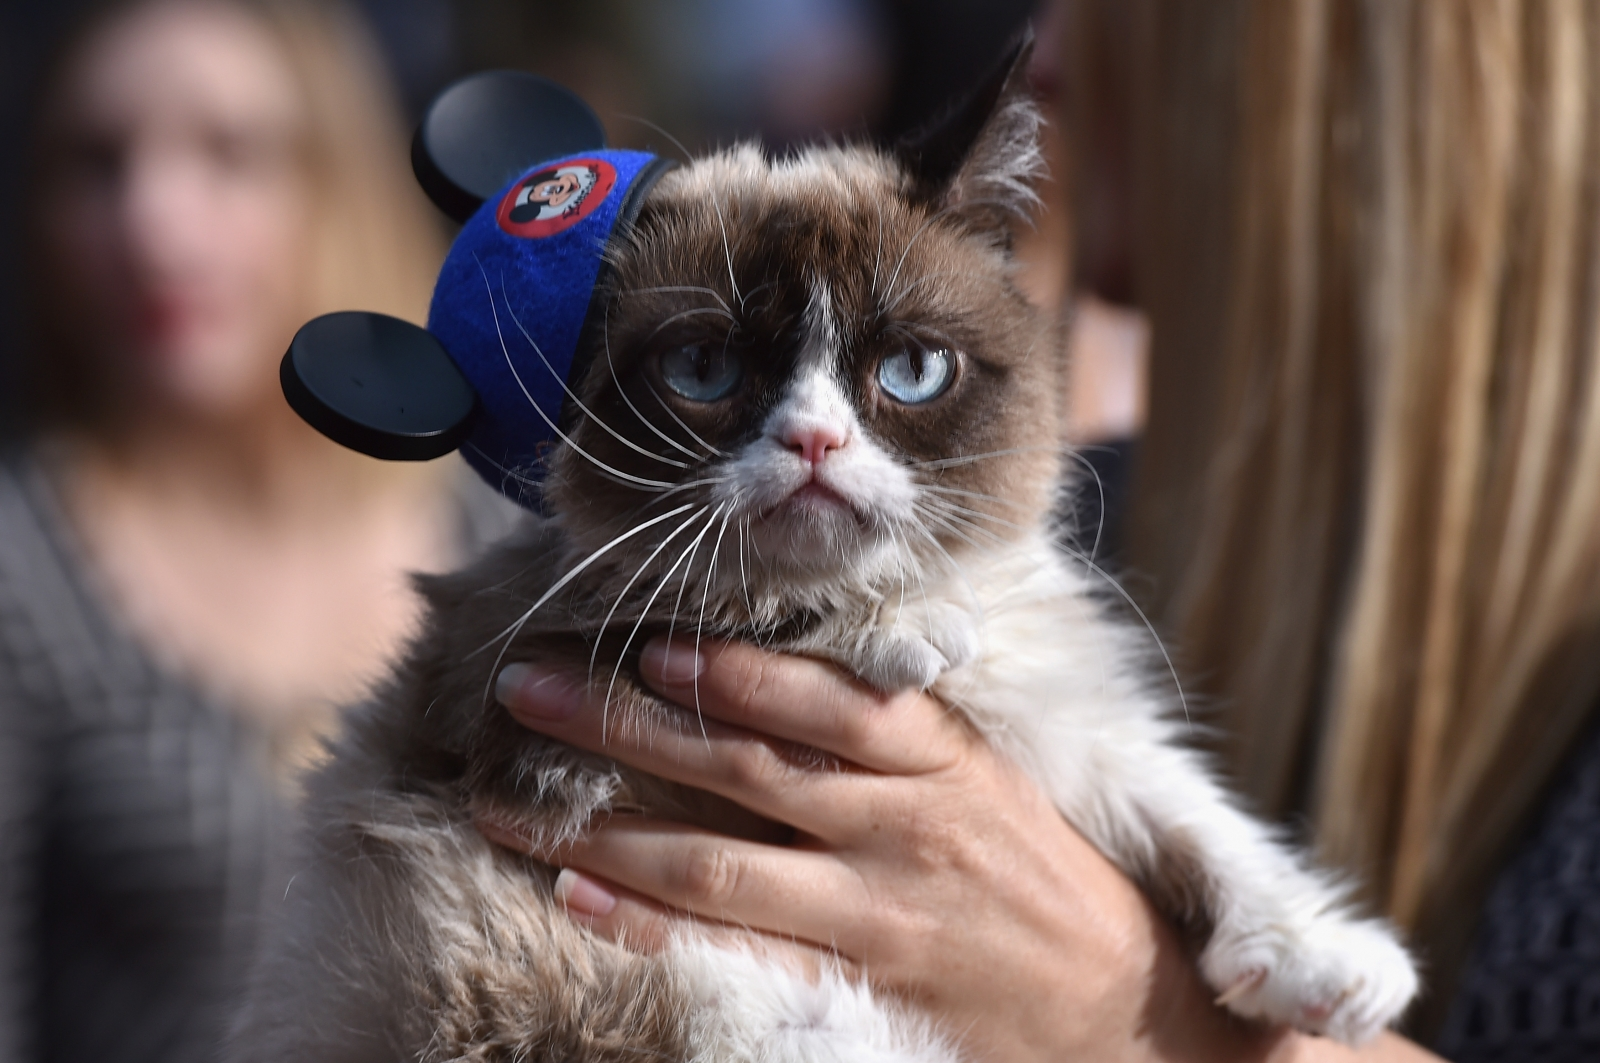 Guinness world records 60th anniversary 10 amazing record breaking cats - Smallest cat in the world guinness ...